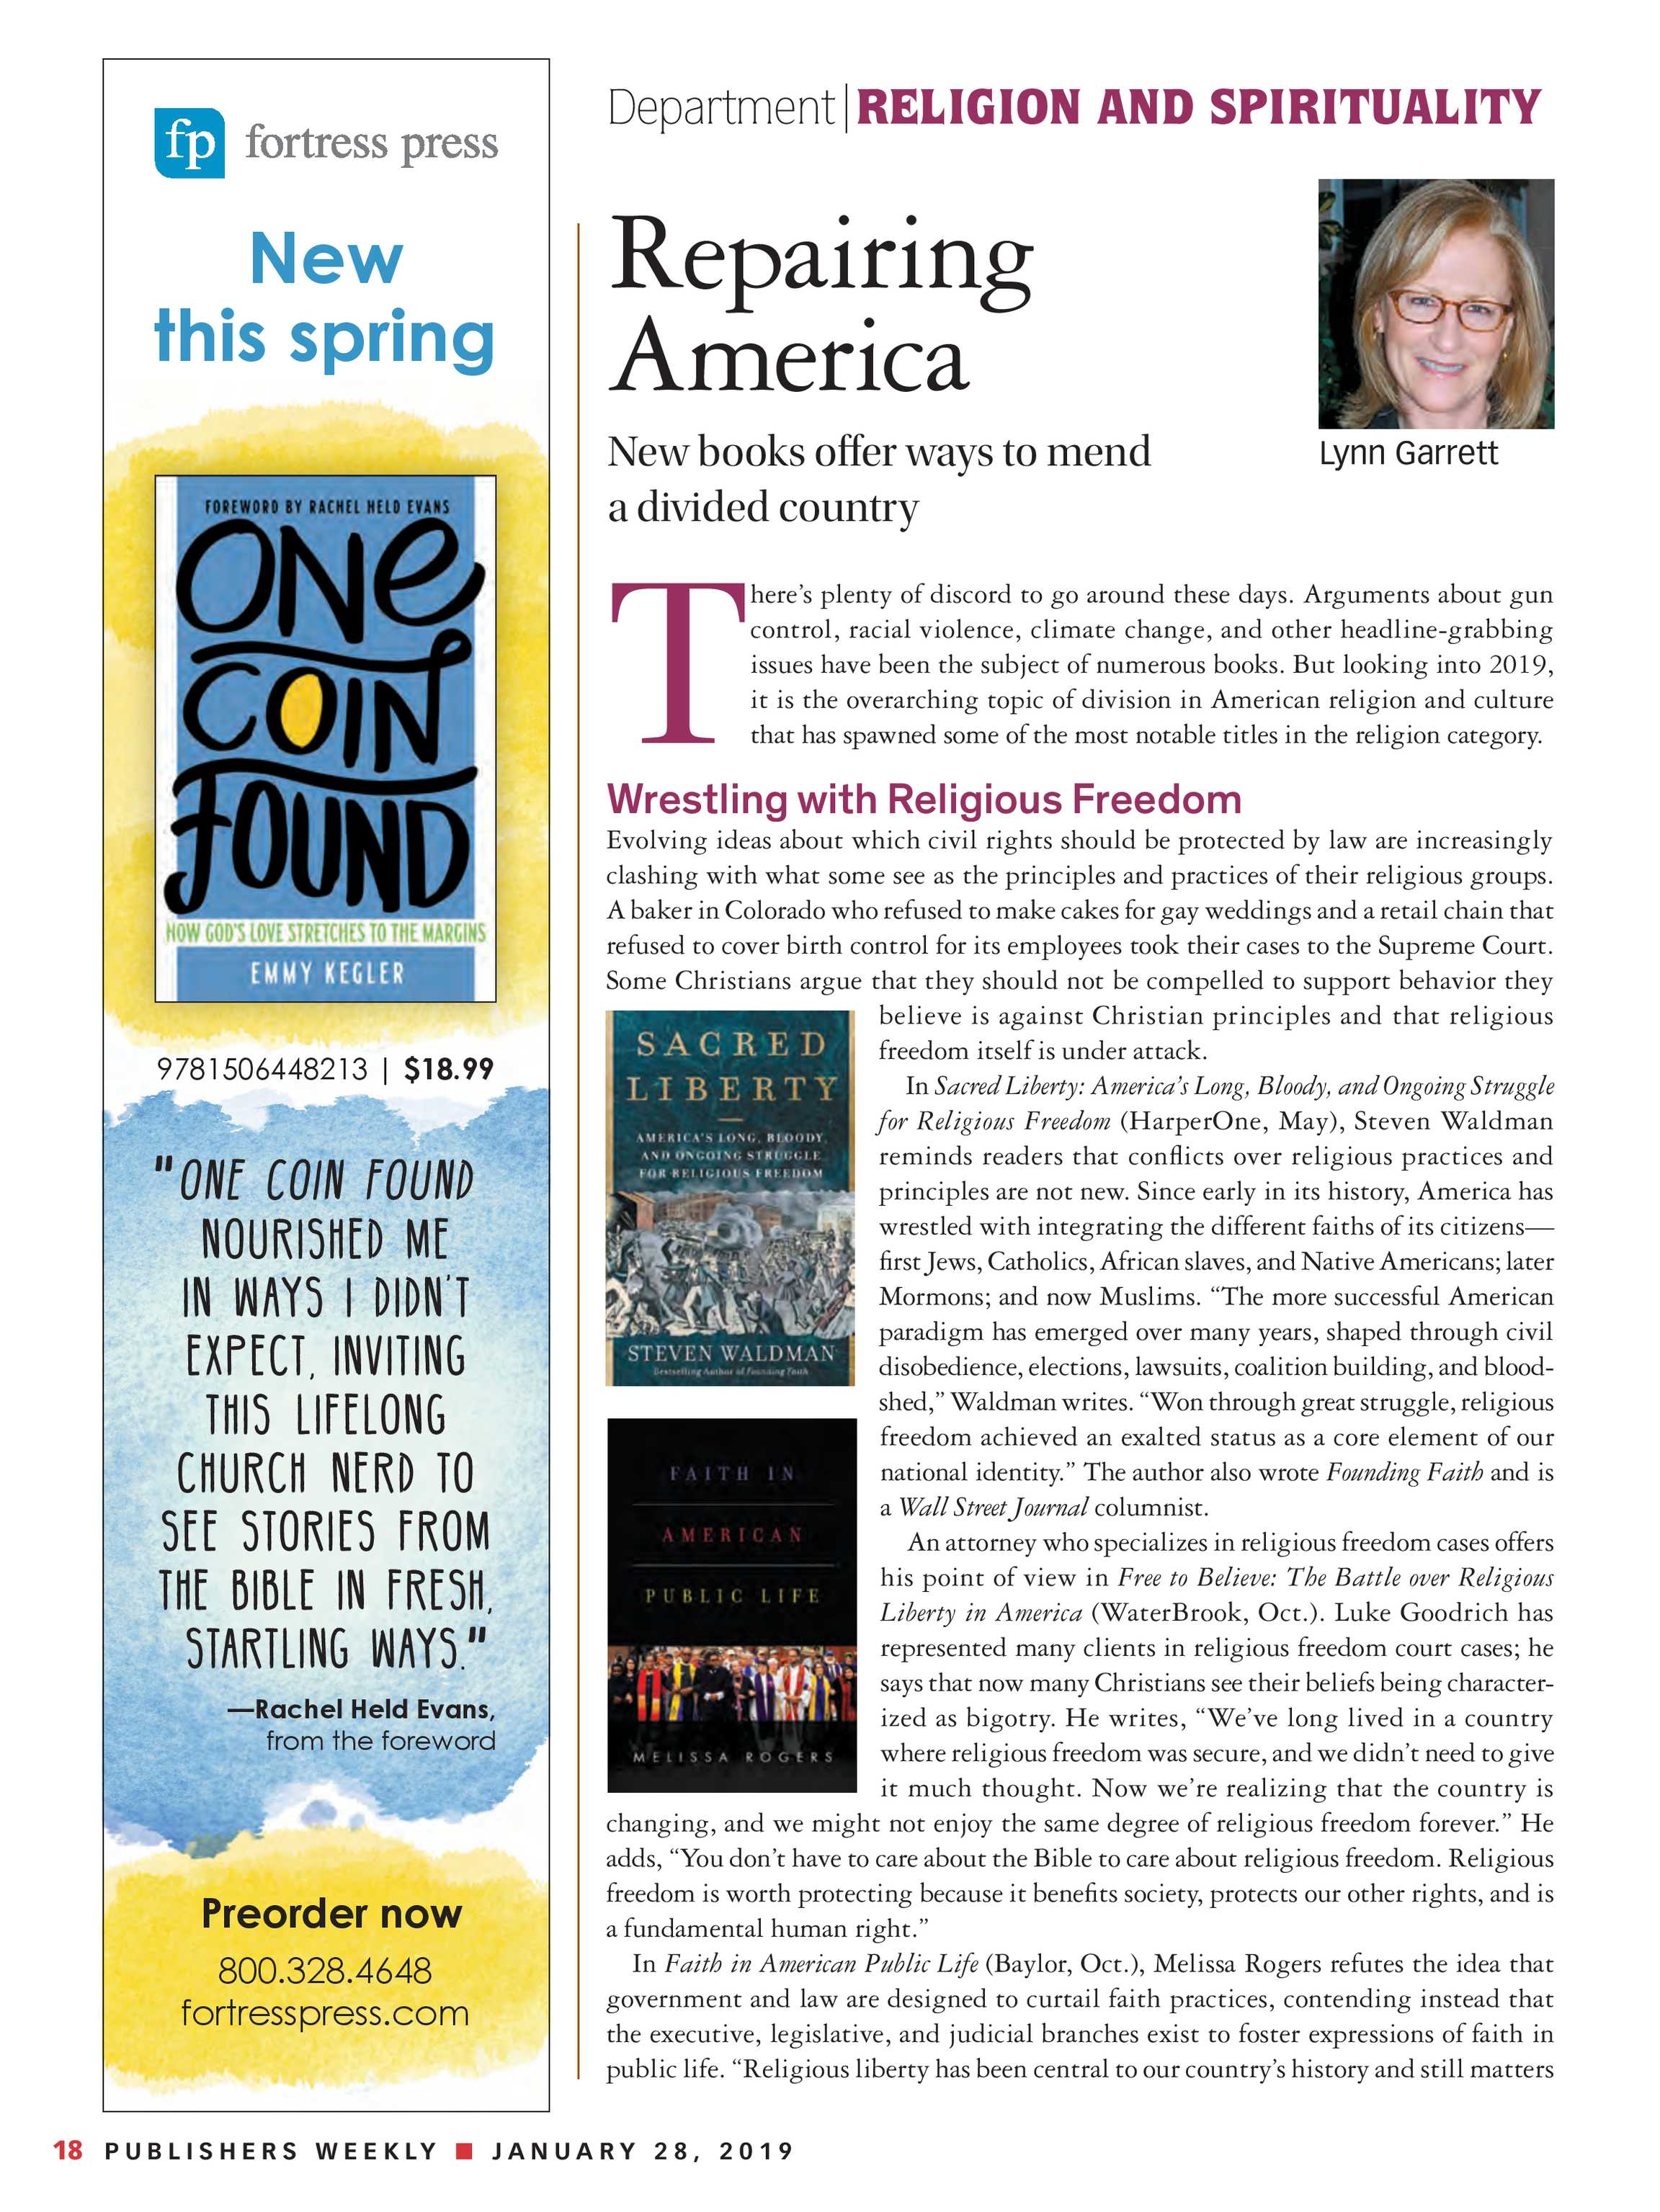 Publishers Weekly - January 28, 2019 - page 18